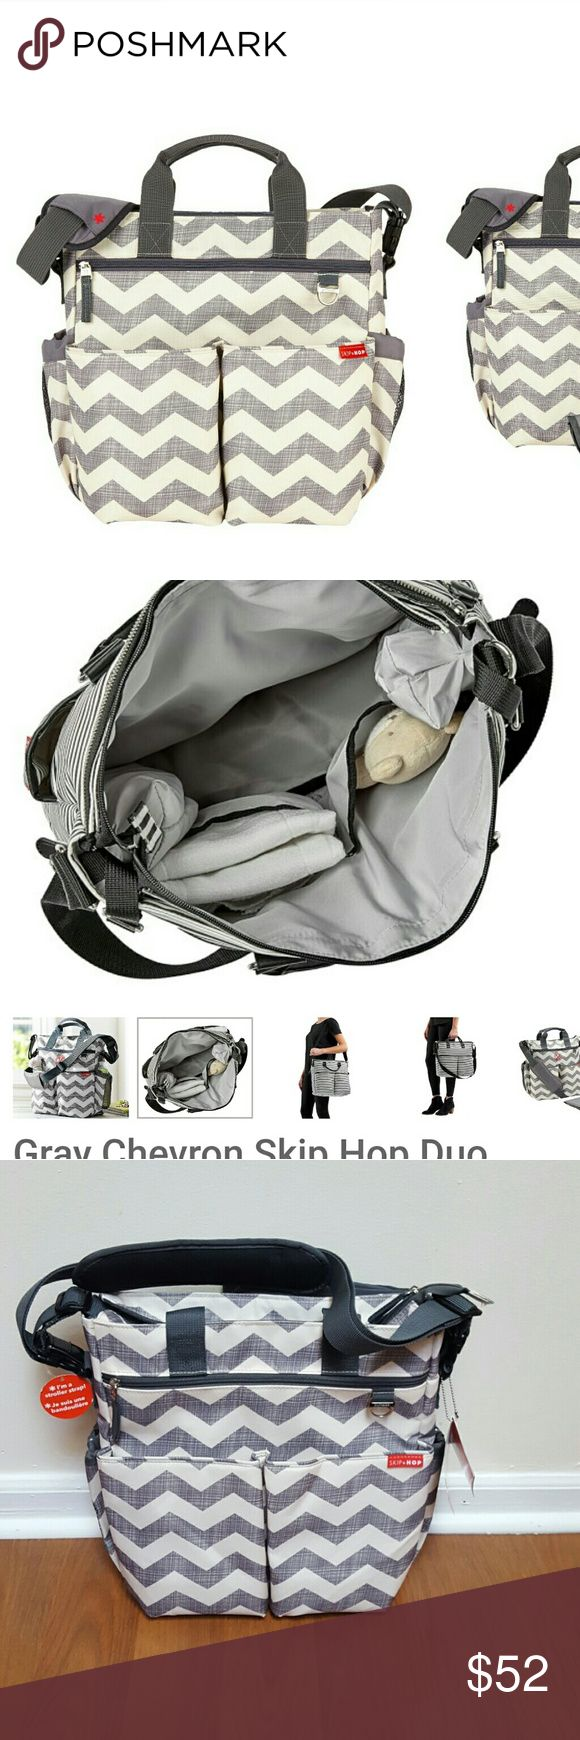 """Skip Hop chevron diaper bag *NWT*SKIP*HOP Duo Signature Diaper Bag is the revolutionary bag with so many organizational options that it became a must-have for parents: -10 storage pockets -2 elasticized, mesh side pockets for bottles -Front zip pocket for easy access to your phone -Changing pad -Measures 13.75"""" H x 13.0"""" W x 4.25"""" D Skip Hop Bags Baby Bags"""